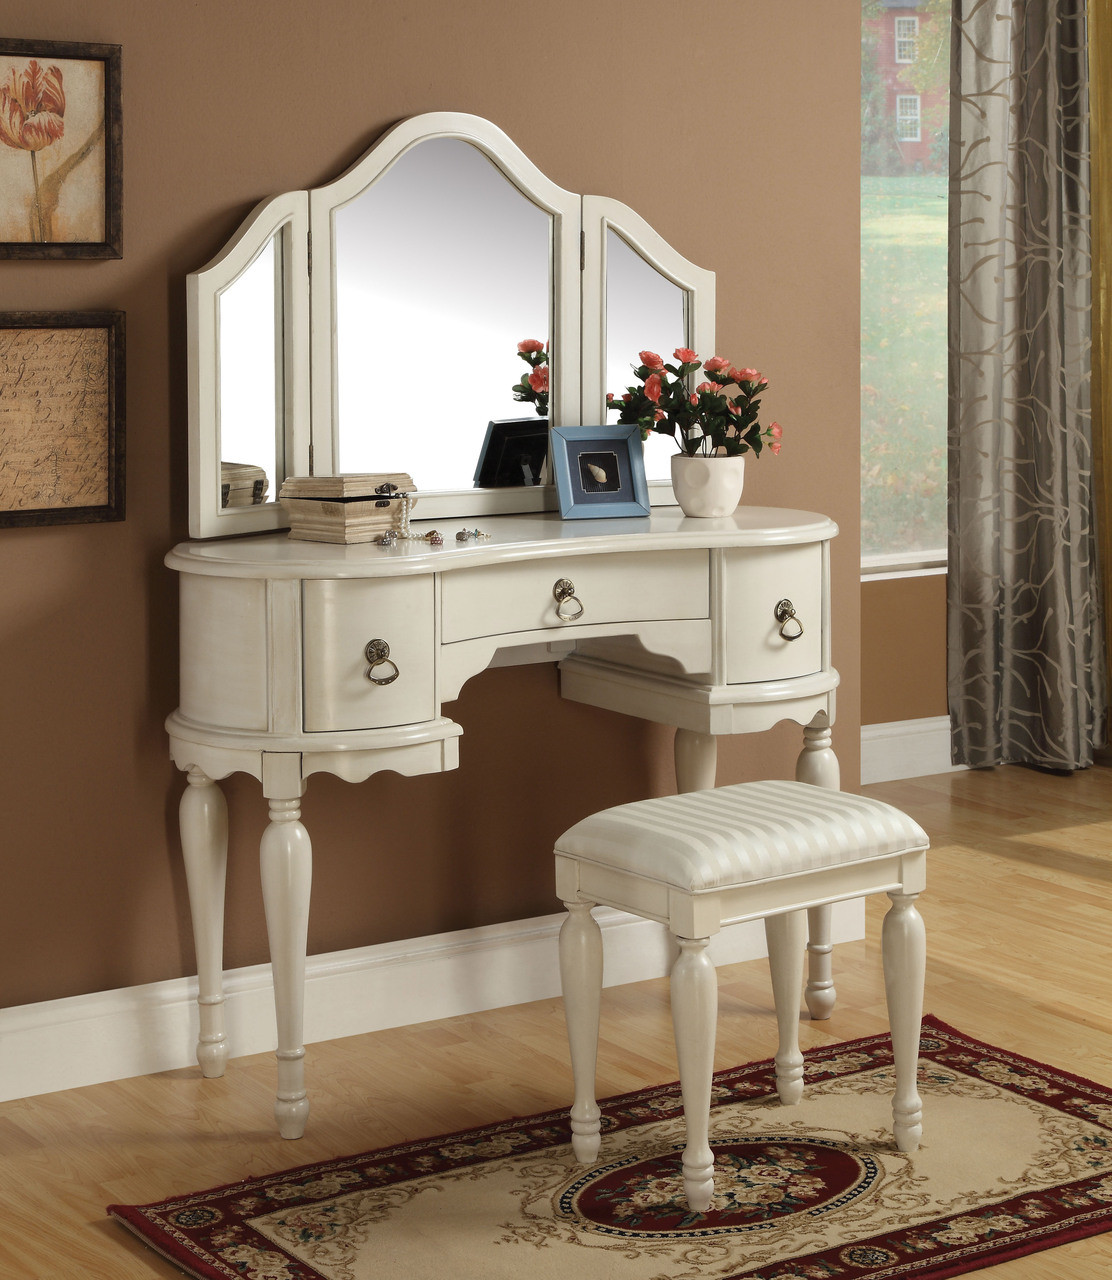 Fontana off white vanity dressing table set ocfurniture off white vanity dressing table set geotapseo Gallery